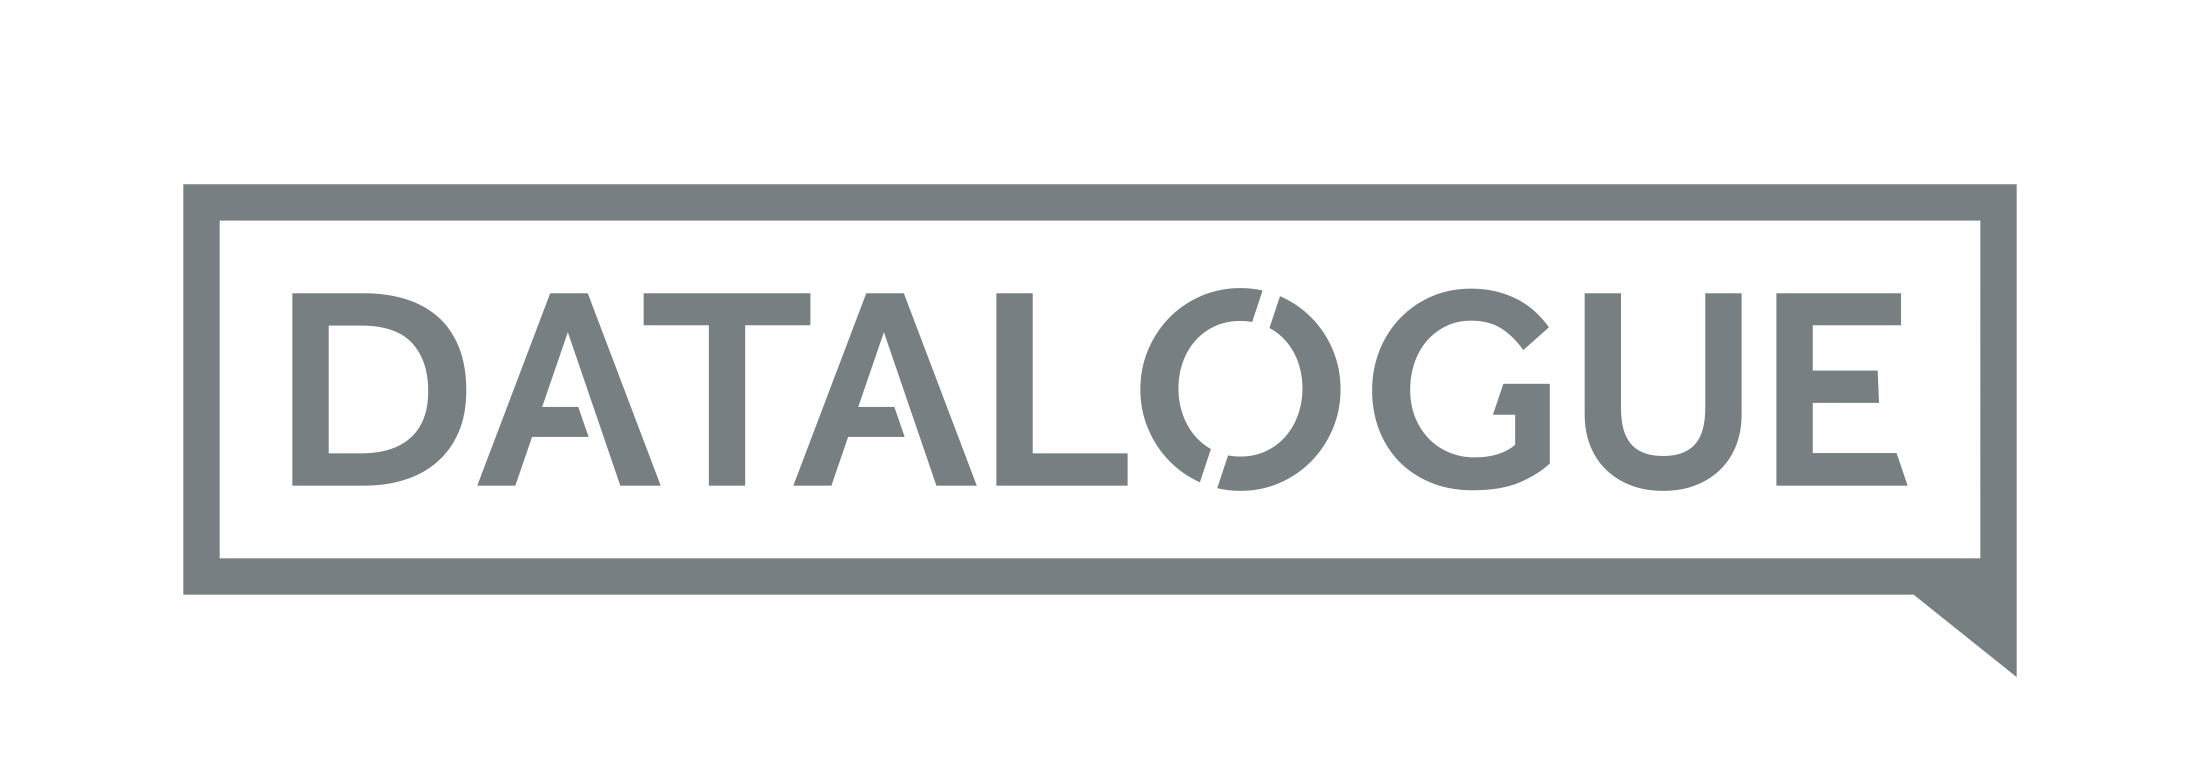 Datalogue logo